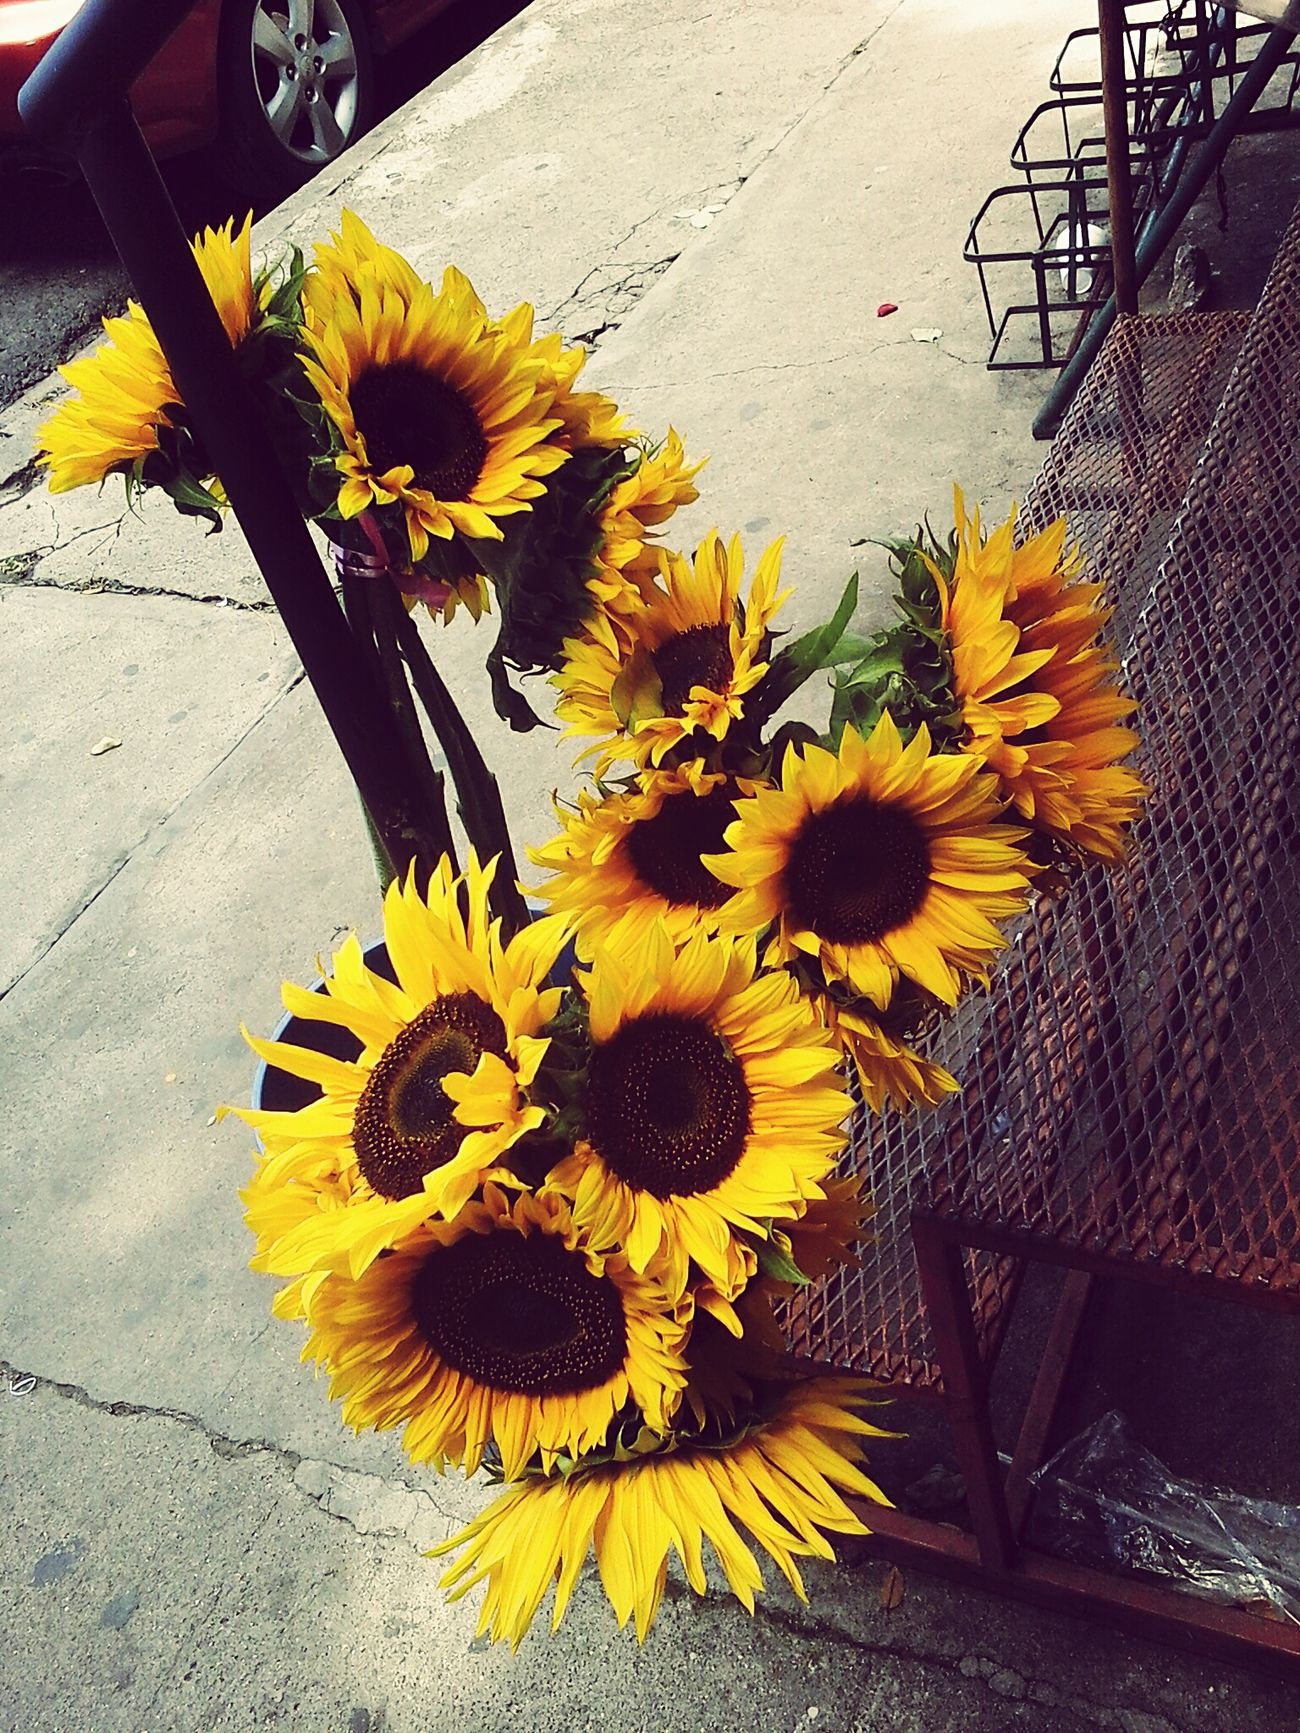 Flower Yellow Flower Head Nature Sunflower Petal Fragility No People Outdoors Freshness Beauty In Nature Close-up Day Bouquet Black-eyed Susan Flower Arrangement Beauty Is In The Eye Of The Beholder Beautyinnature  Rear View El Salvador